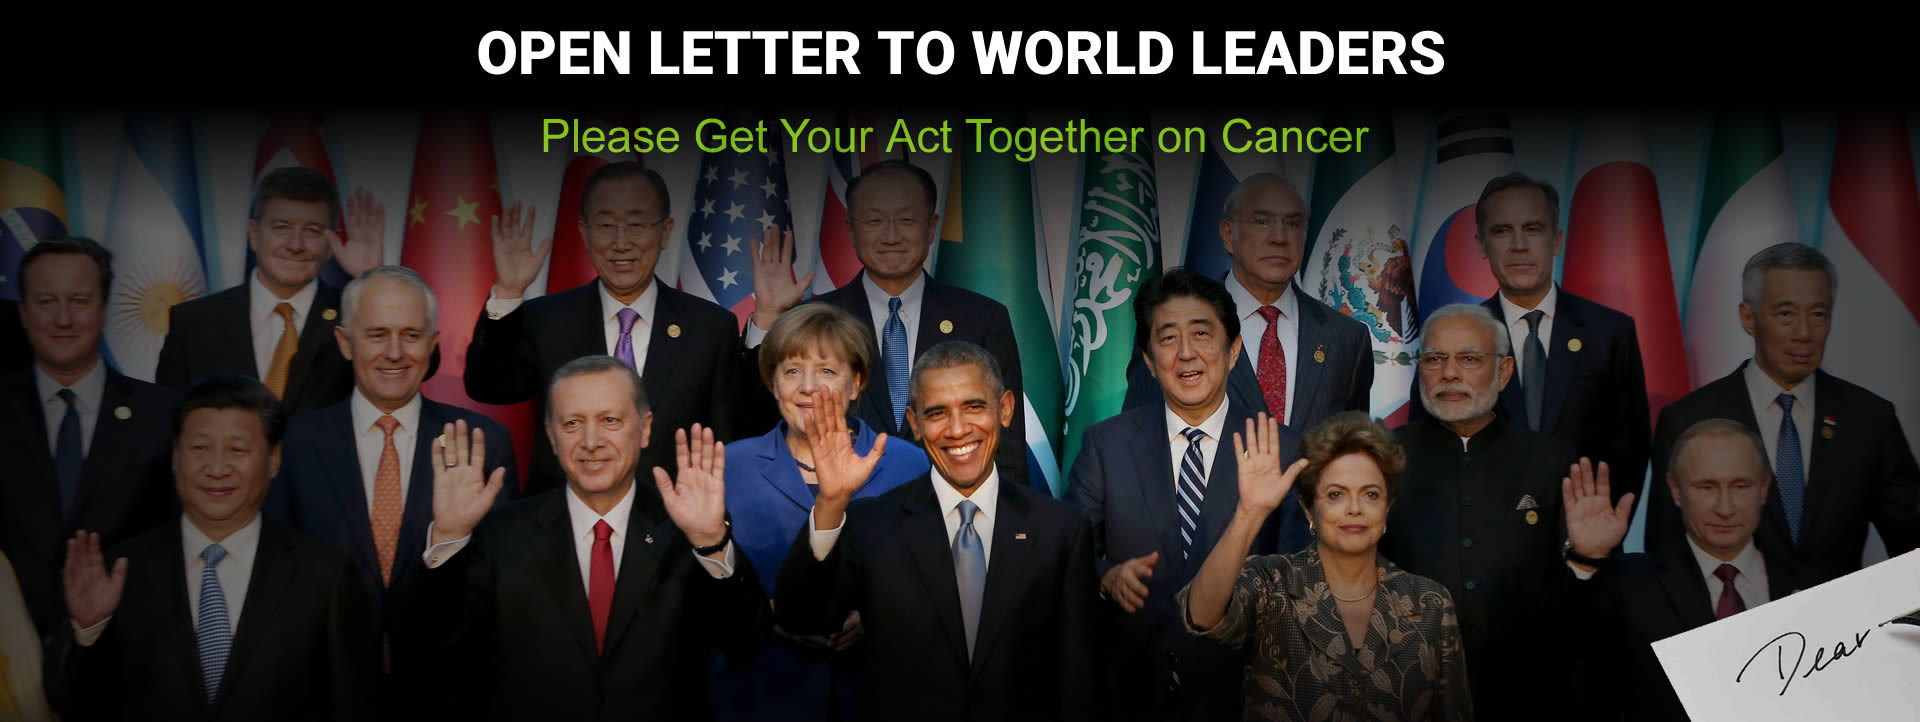 Cancer Letter to World Leaders